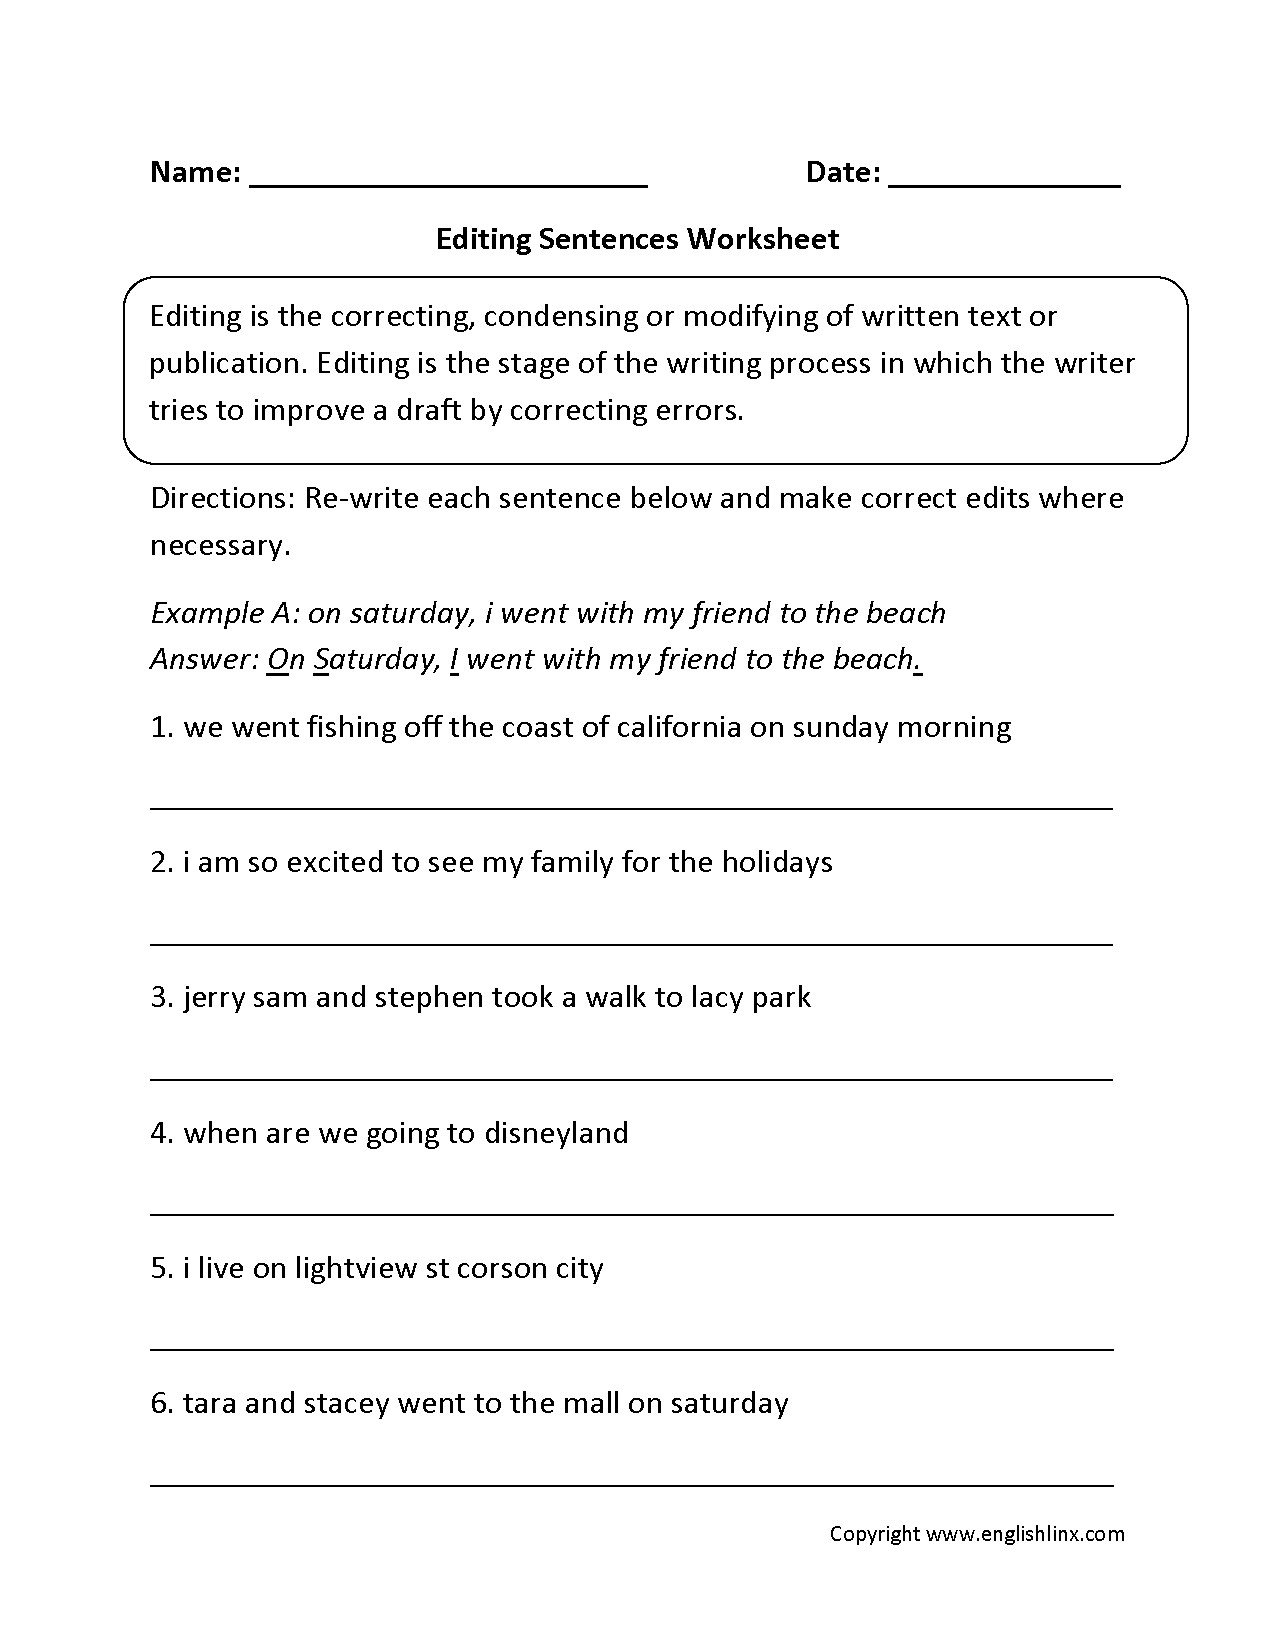 Daily Edit Worksheet Editing Worksheet Sentece